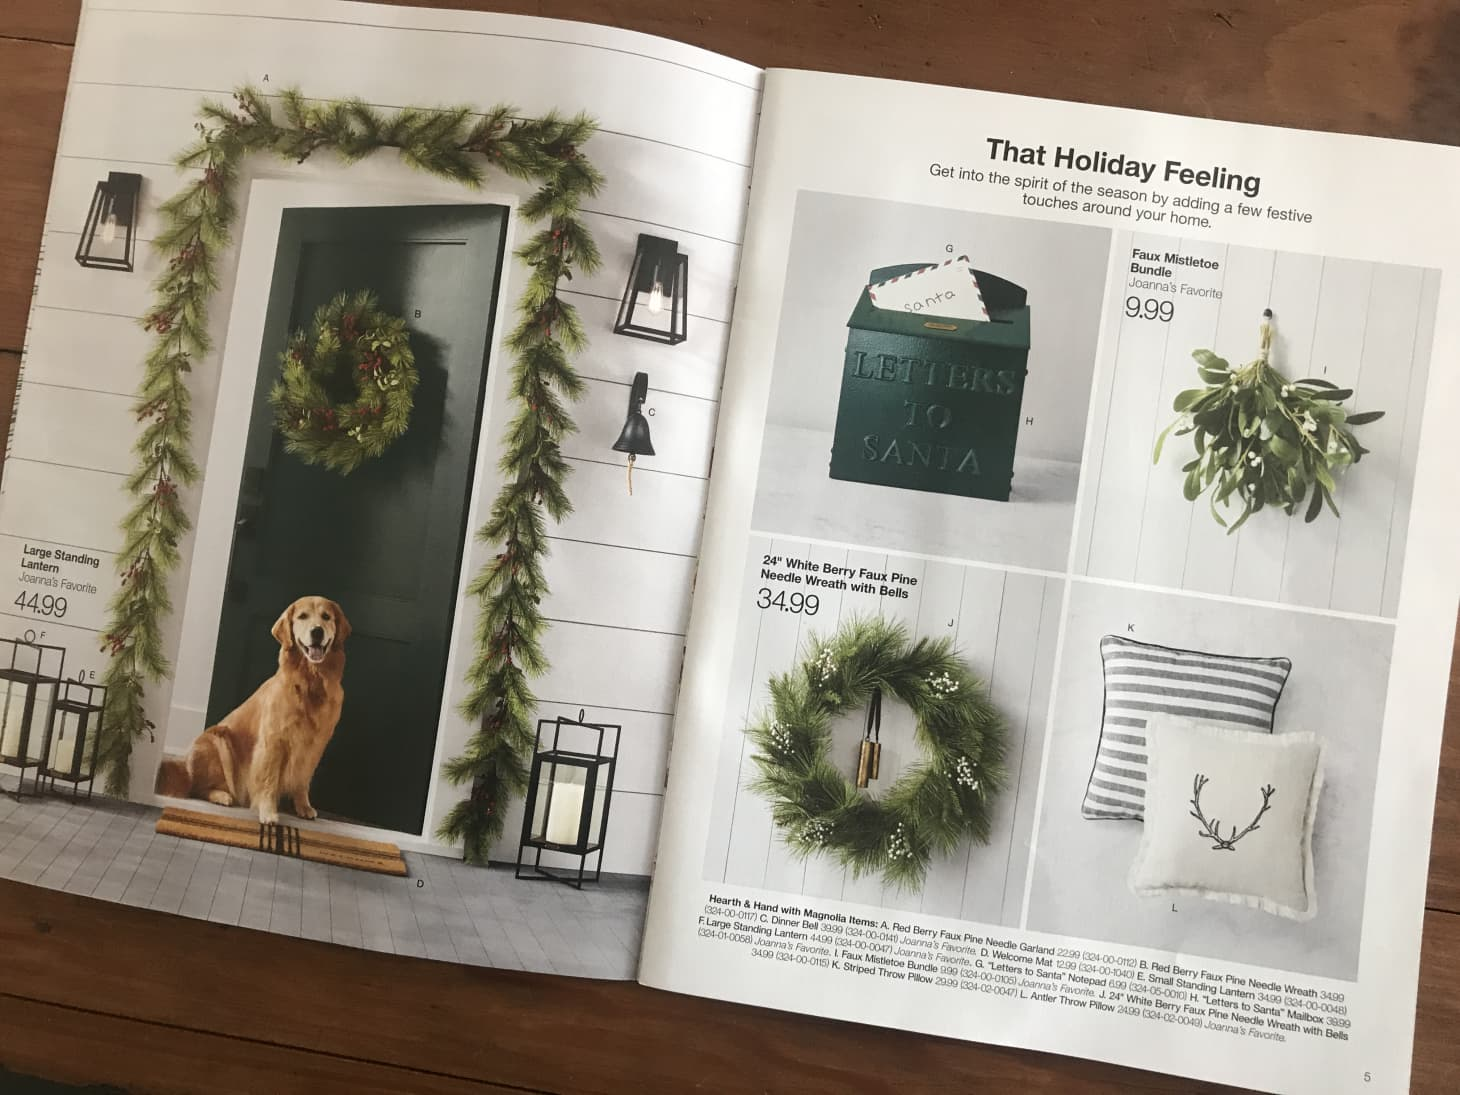 5 Holiday Decorating Ideas From the Target Catalog ...